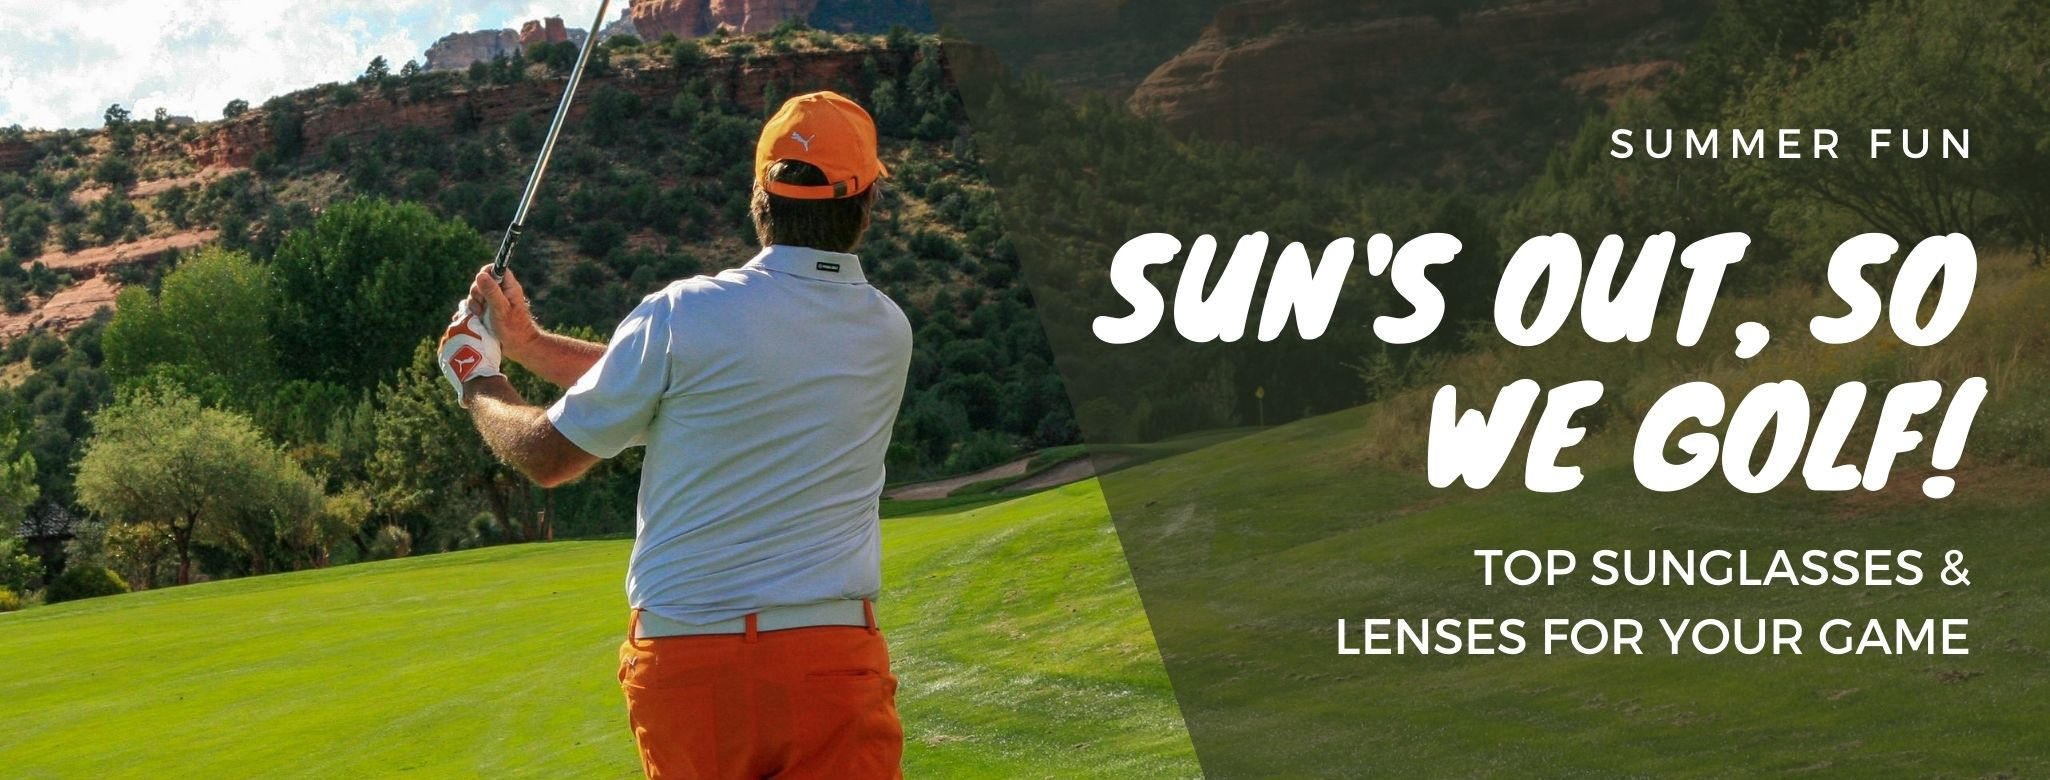 Best sunglasses and lenses for golfing vancouver